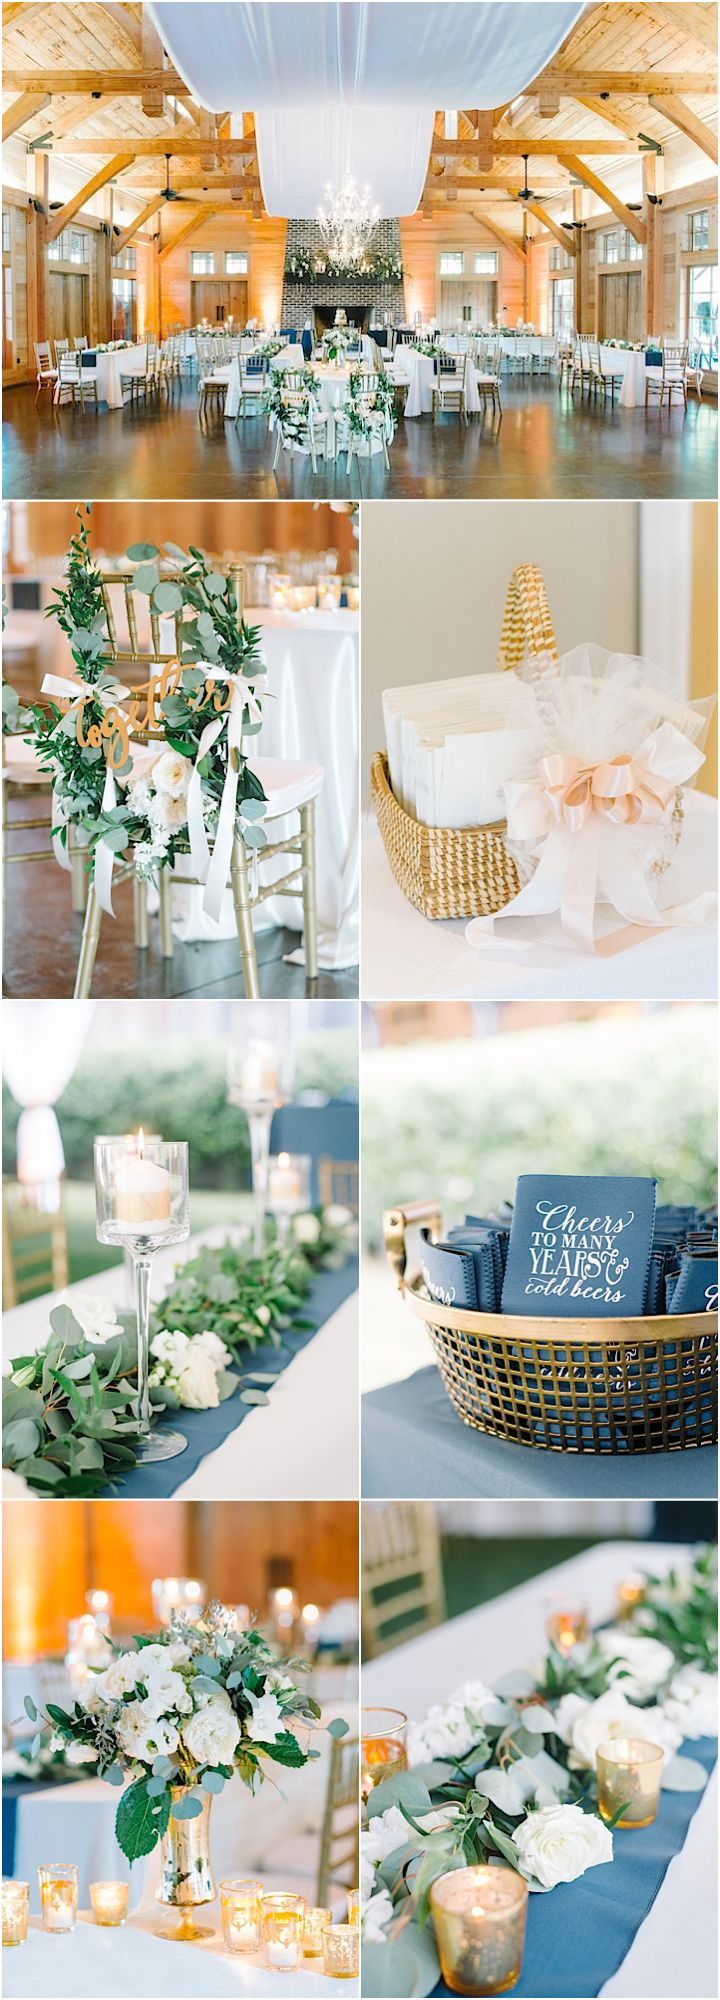 Featured Photographer: Aaron and Jillian Photography; wedding reception idea